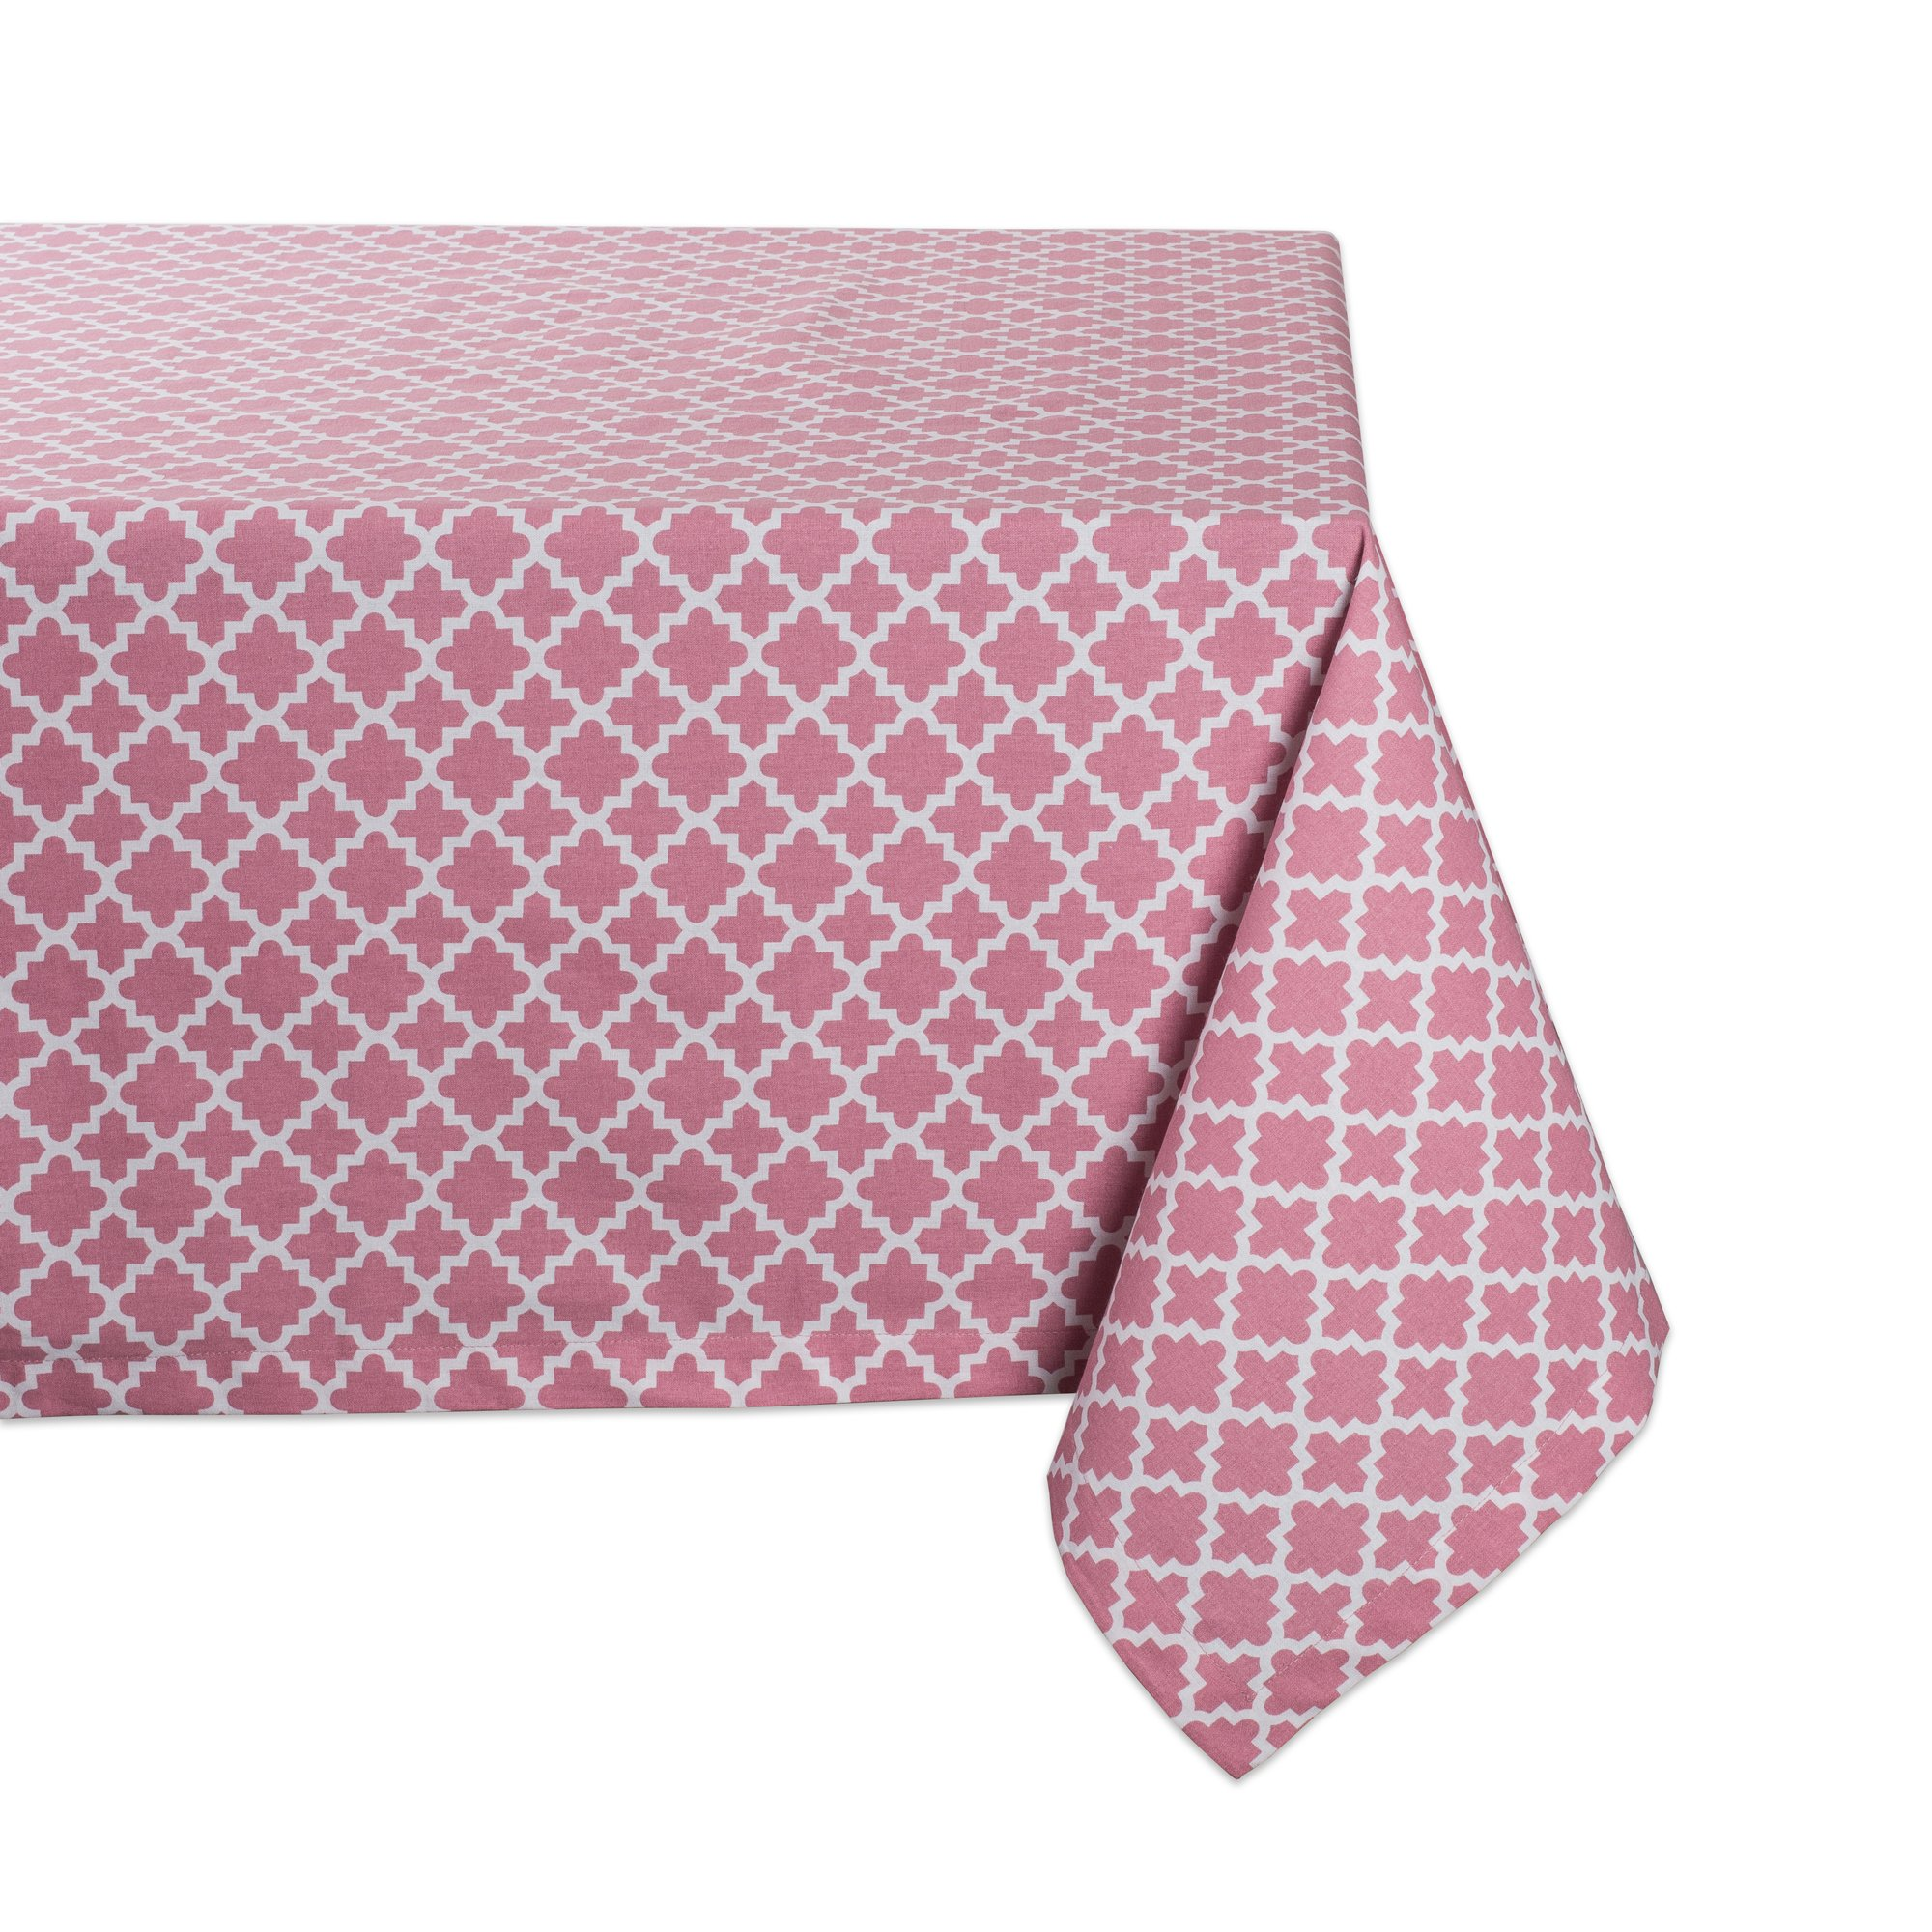 DII Rectangle Lattice Cotton Tablecloth for Weddings, Picnics, Spring Parties and Everyday Use - 60x84'', Rose Pink and White